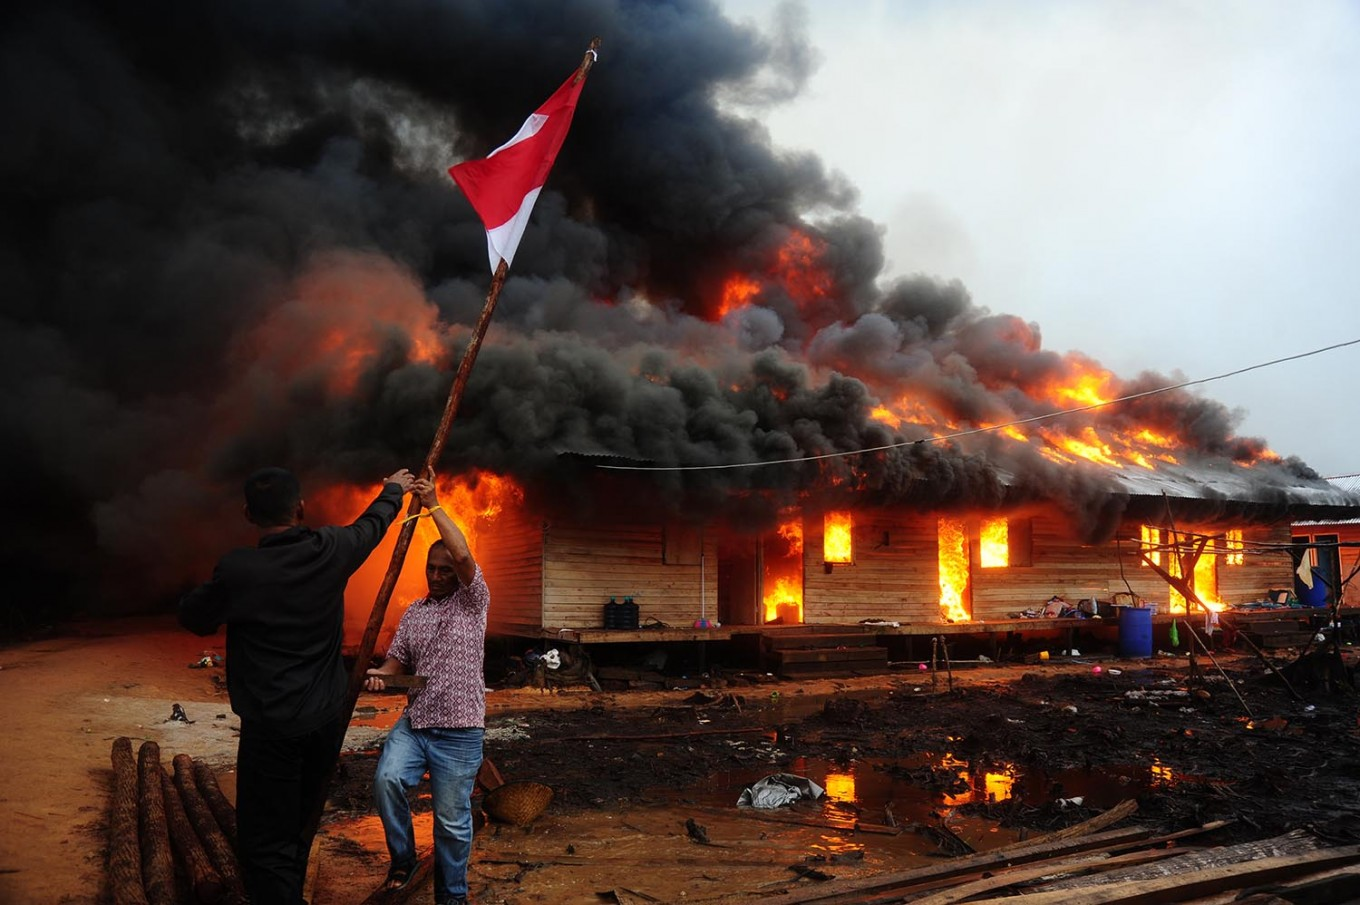 Engulfed by fire: Selamatkan merah putih (Save national flag) by Jessica Helena Wusyang